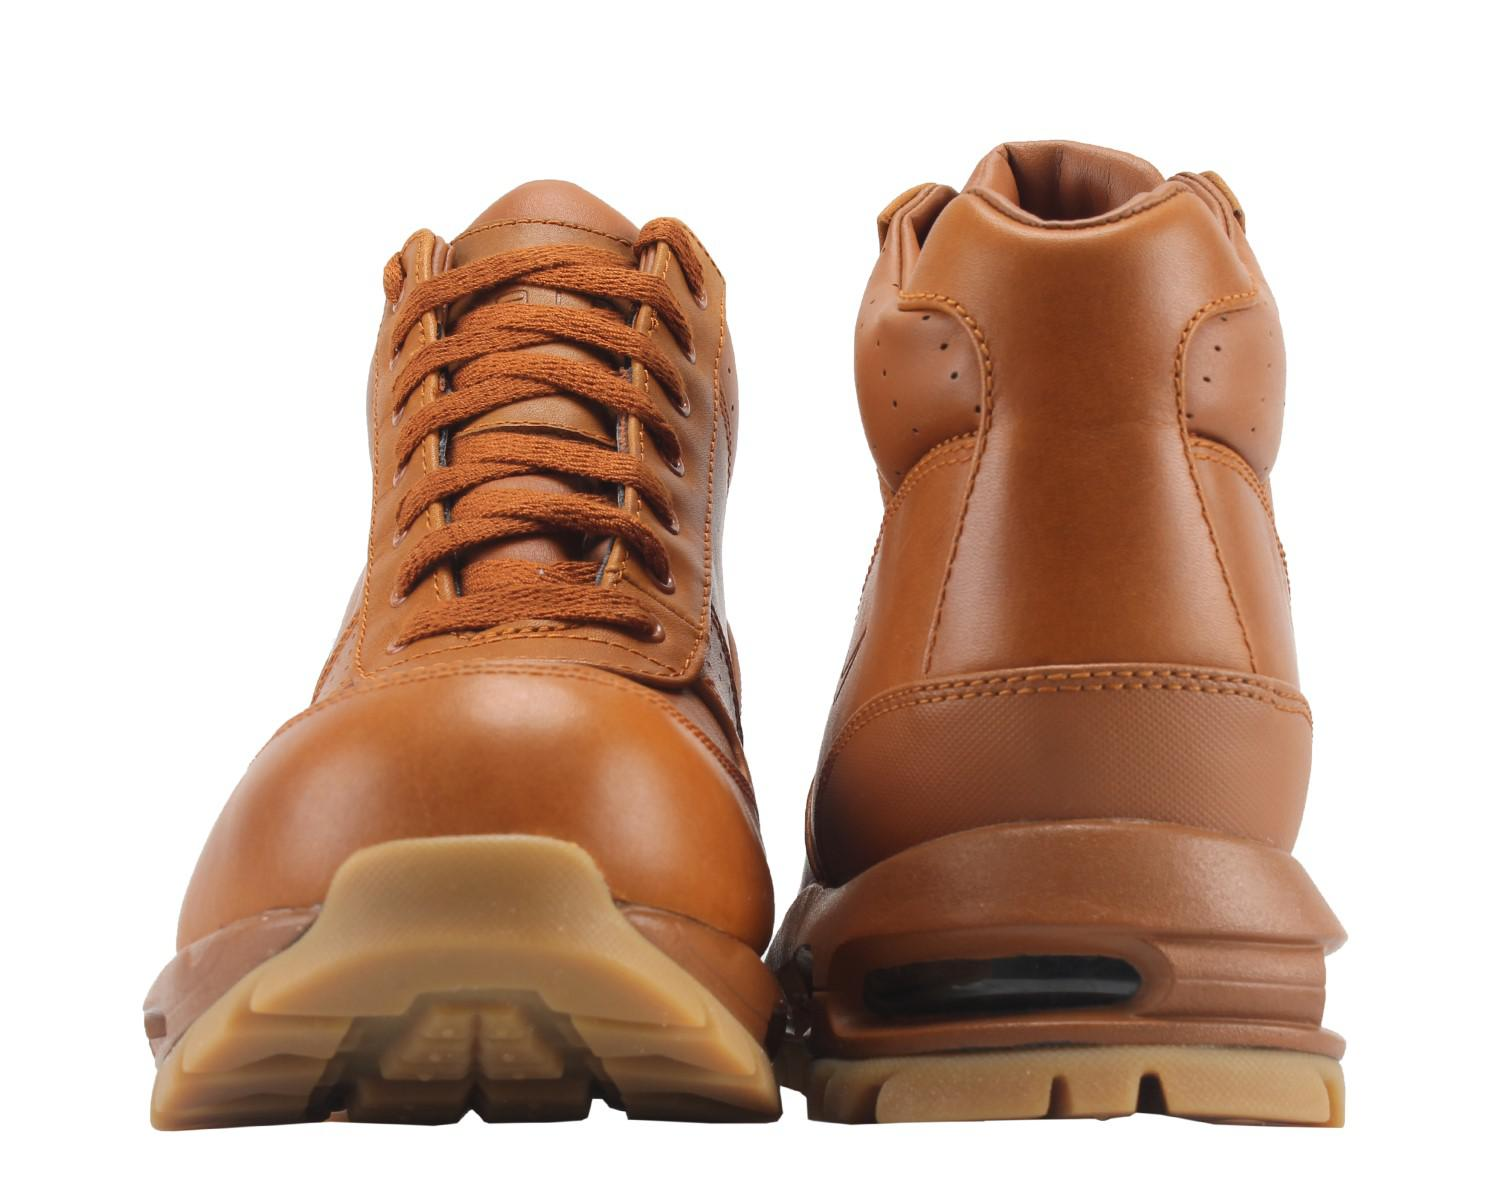 e5eed9dc8a4a18 ... Lyst - Nike Air Max Goadome Shoes Tawnygum Light Brown 86503 Nike Air  Max Goadome Acg Boots Boot 865031 208 Sneaker Shoe Size 13 Tawny Gum ...